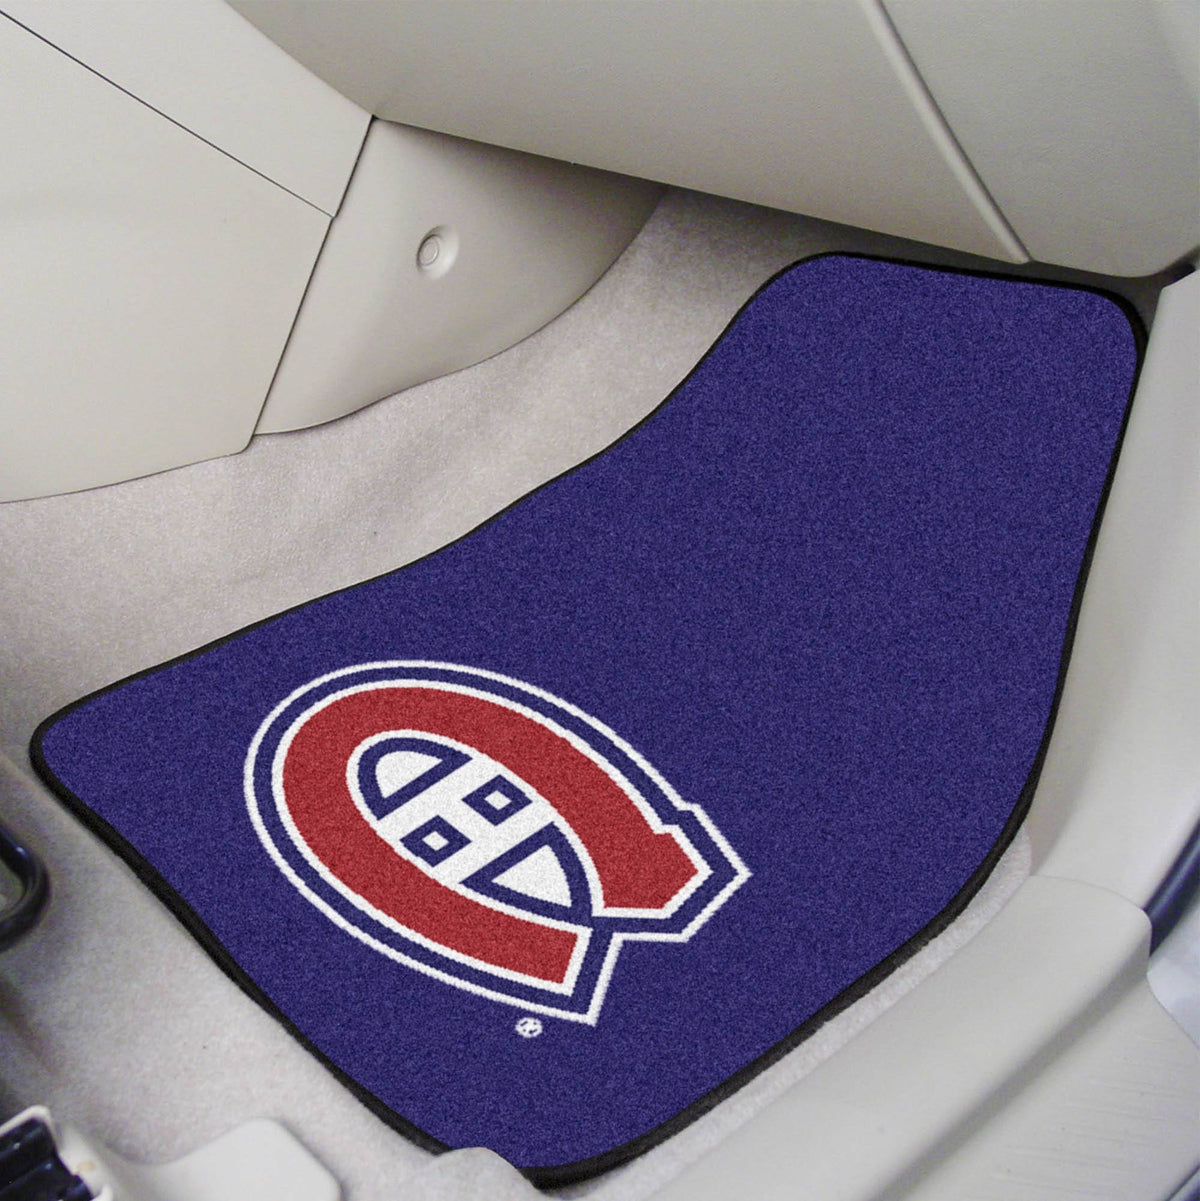 NHL - Carpet Car Mat, 2-Piece Set NHL Mats, Front Car Mats, 2-pc Carpet Car Mat Set, NHL, Auto Fan Mats Montreal Canadiens